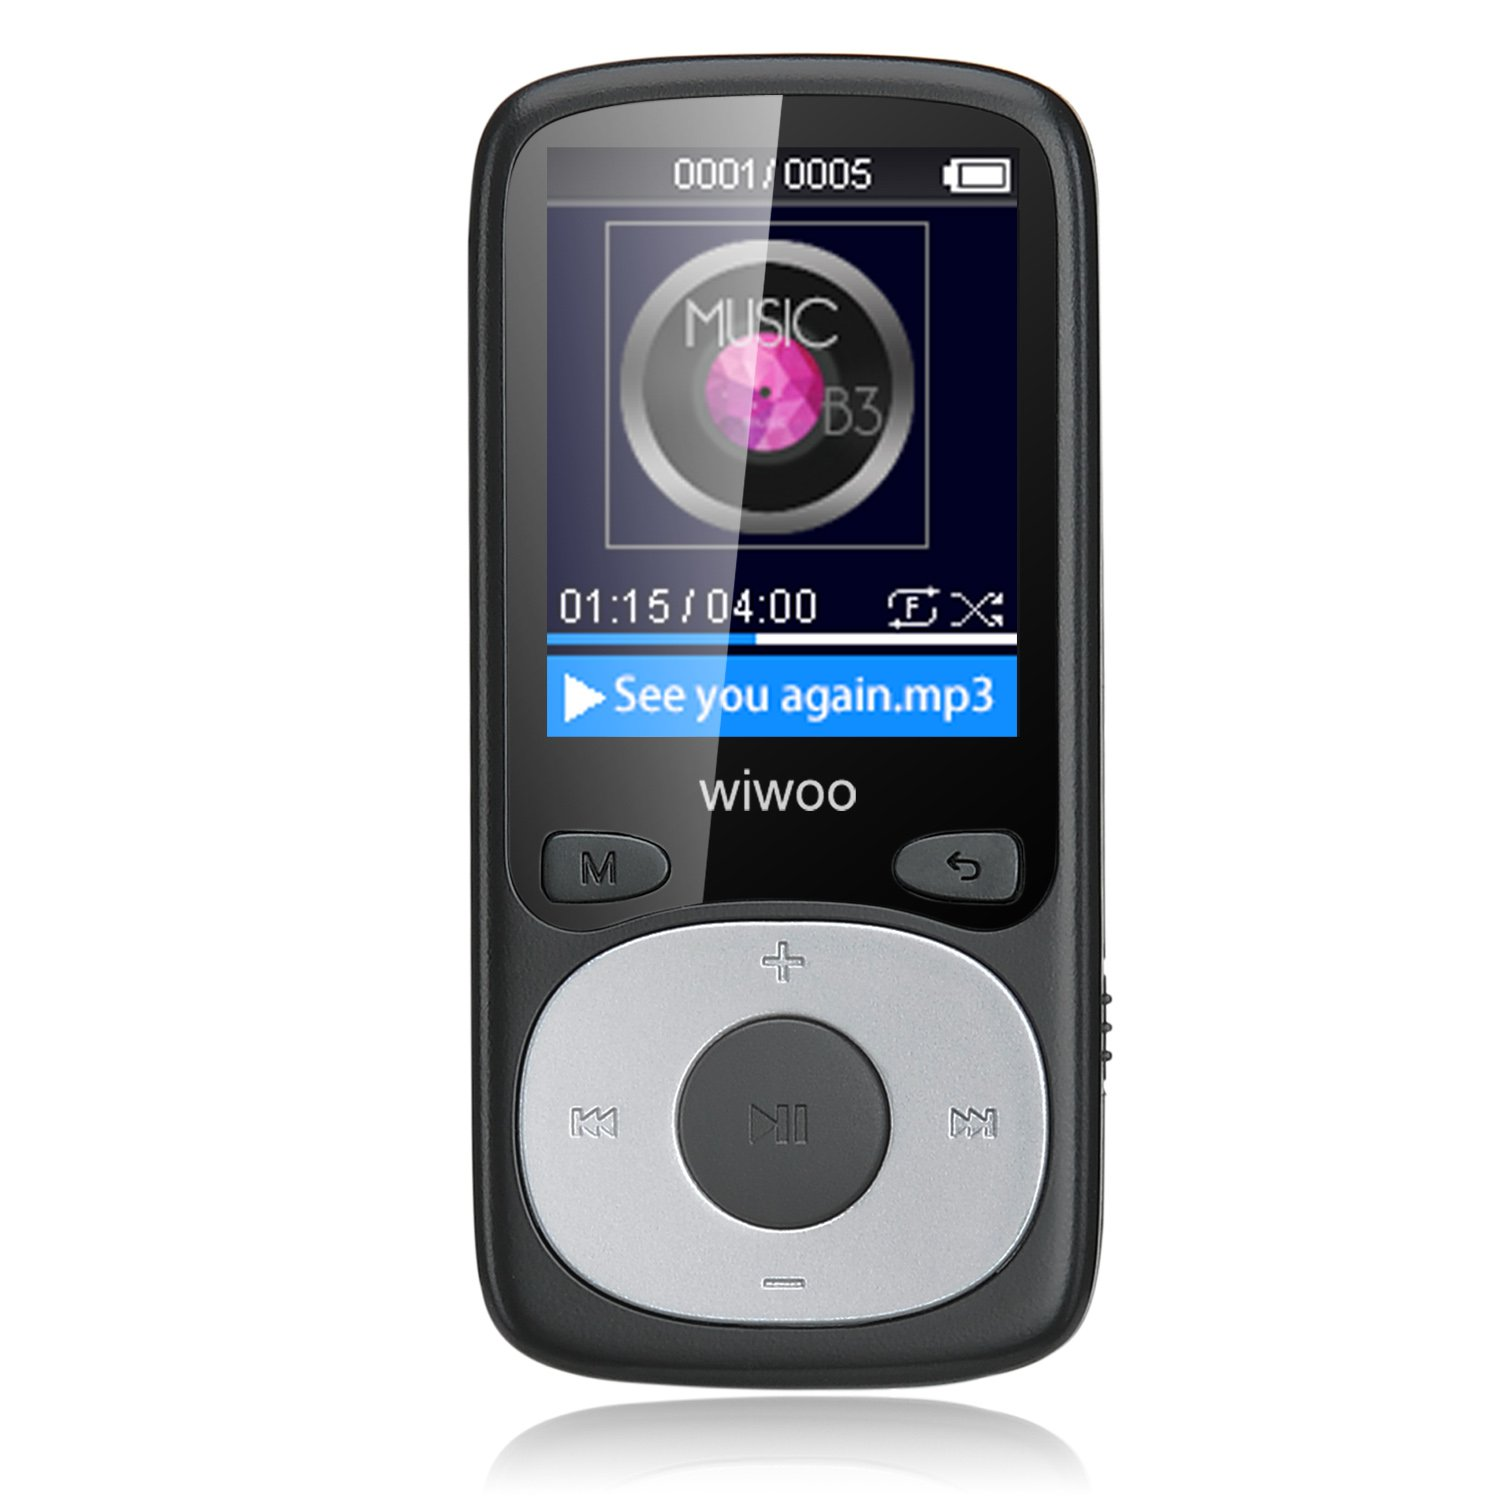 8G MP3 Music Player, 1.8 Inch Portable Audio Player with FM Radio/ Voice Recording, Support up to 64 GB Micro SD Card